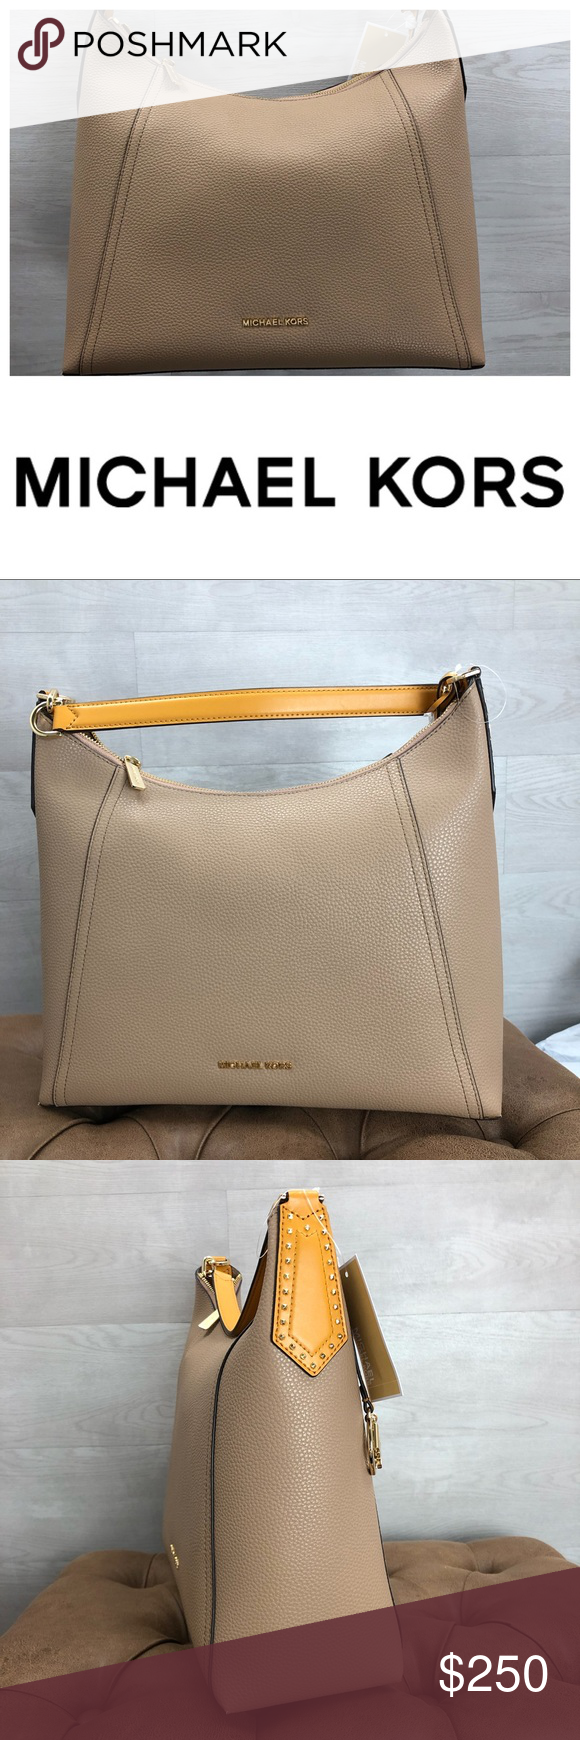 8ec581d88403 Michael Kors Kimberly Studded Large Shoulder bag Michael Kors Kimberly  Studded Leather Shoulder Bag with Wristlet